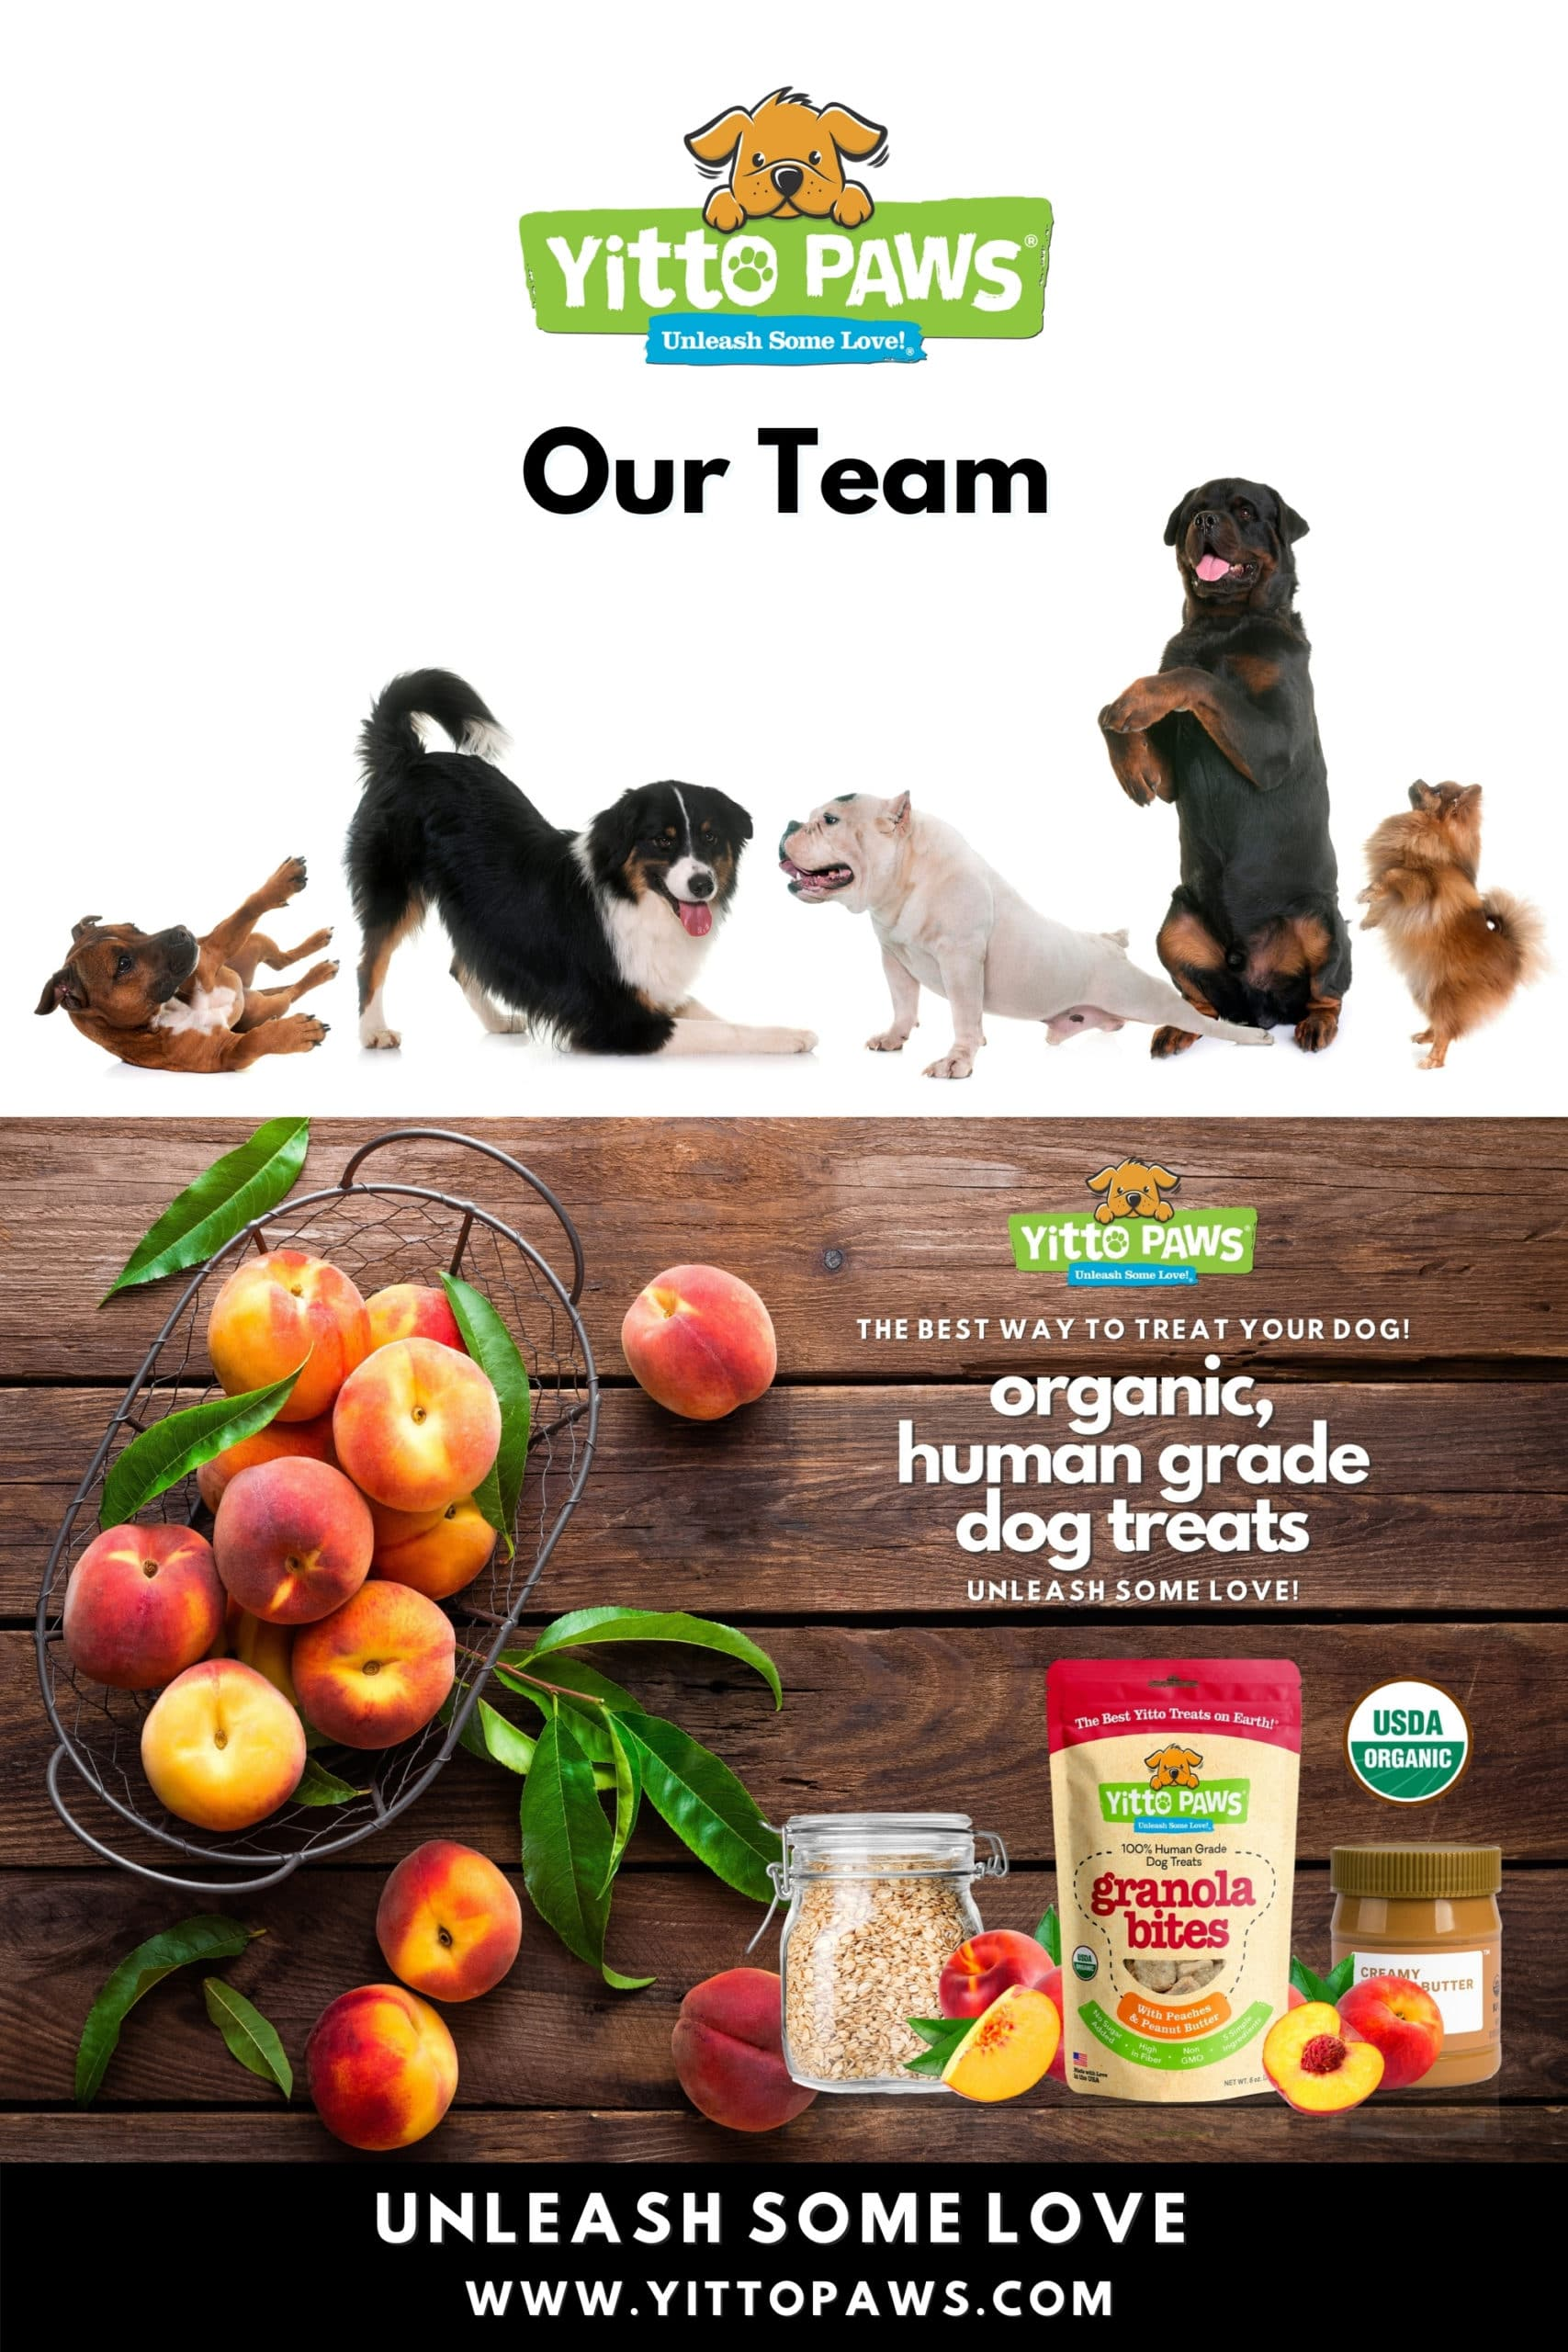 Our team is small but strong ... and we're ALL dedicated to Putting Dogs First by making Yitto Paws the Best Way to Treat Your Dog!